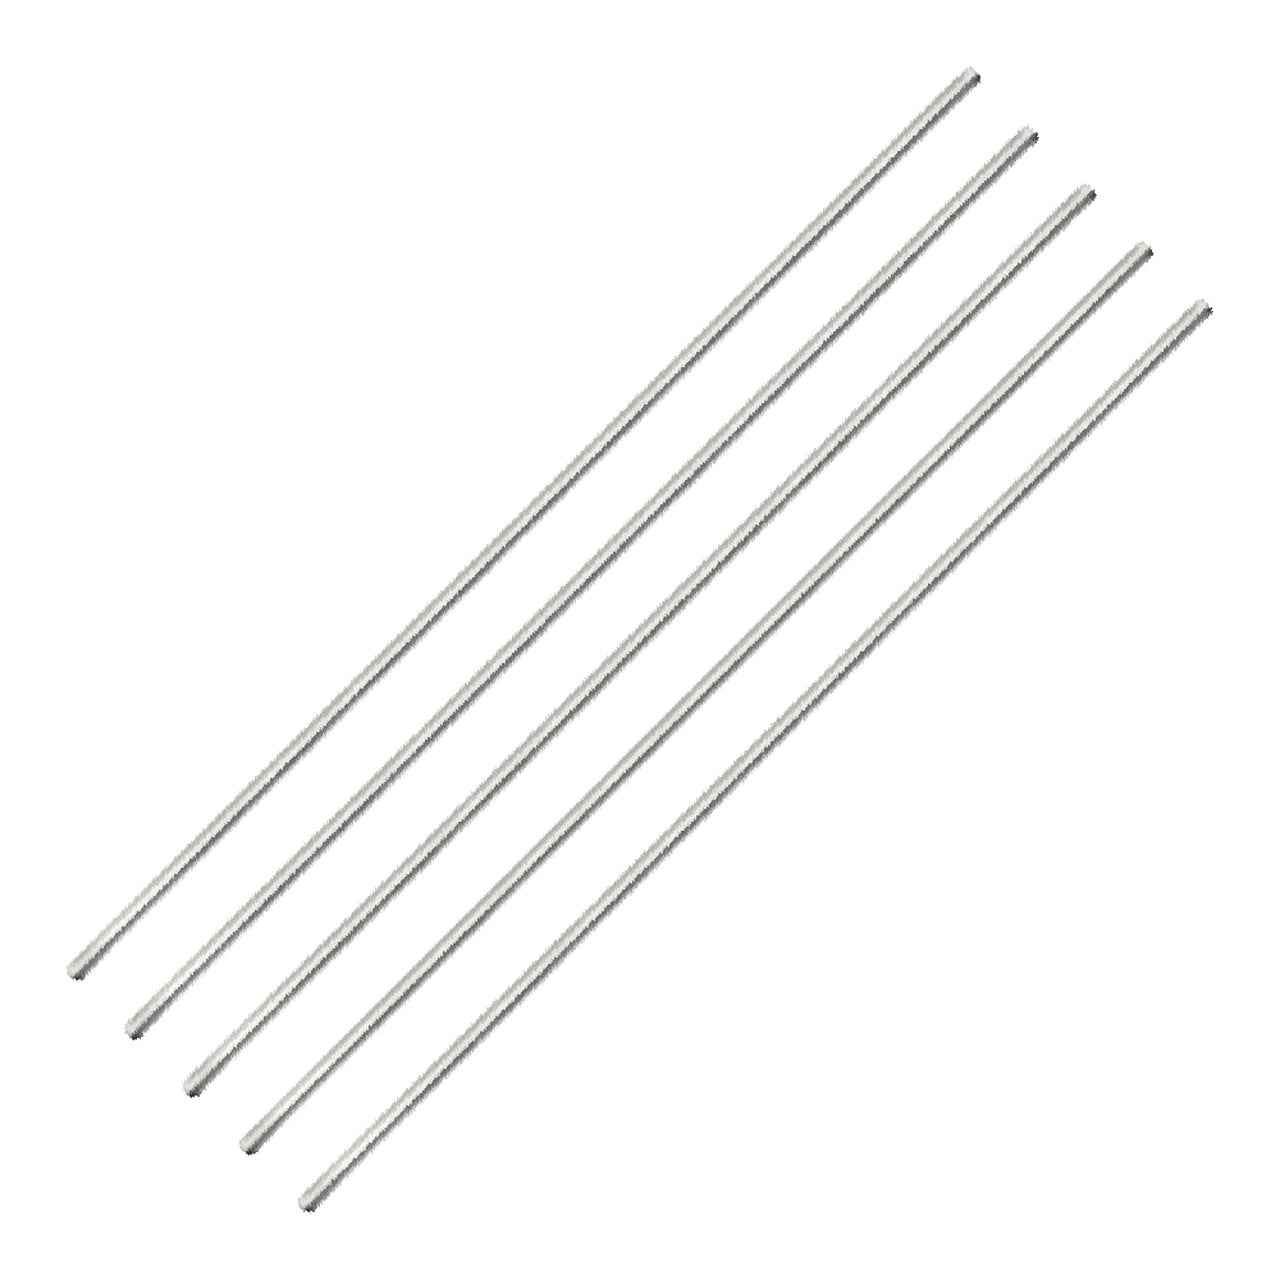 "Galvanized ground rod 5/8""x6' (5 pack)"